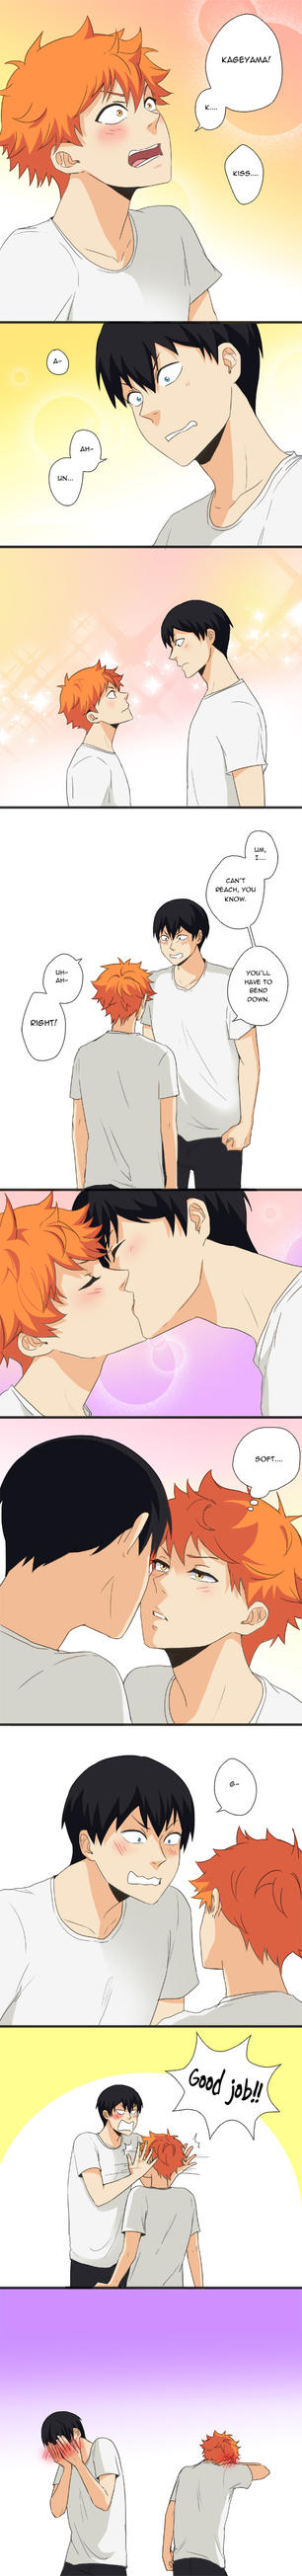 KageHina - First Kiss by Amanduur